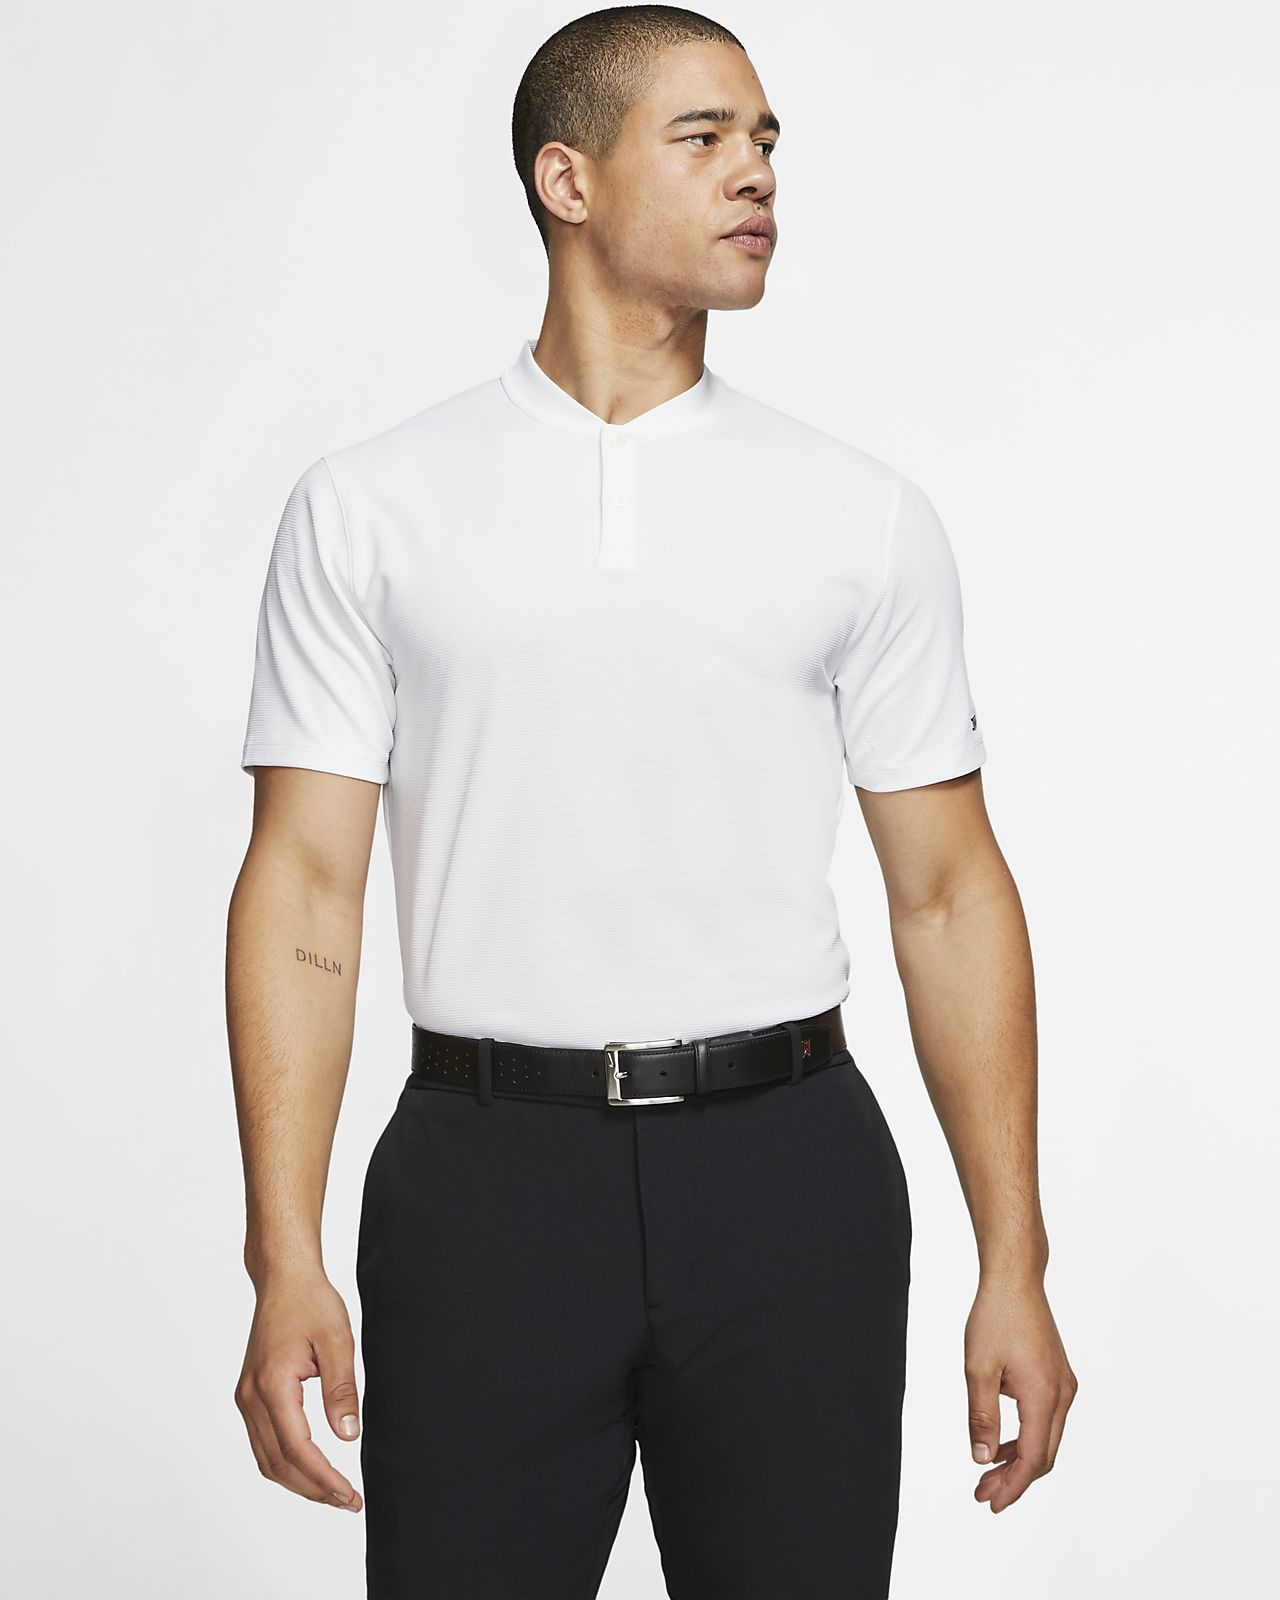 3d33508d Nike AeroReact Tiger Woods Vapor Men's Golf Polo. Nike.com AE